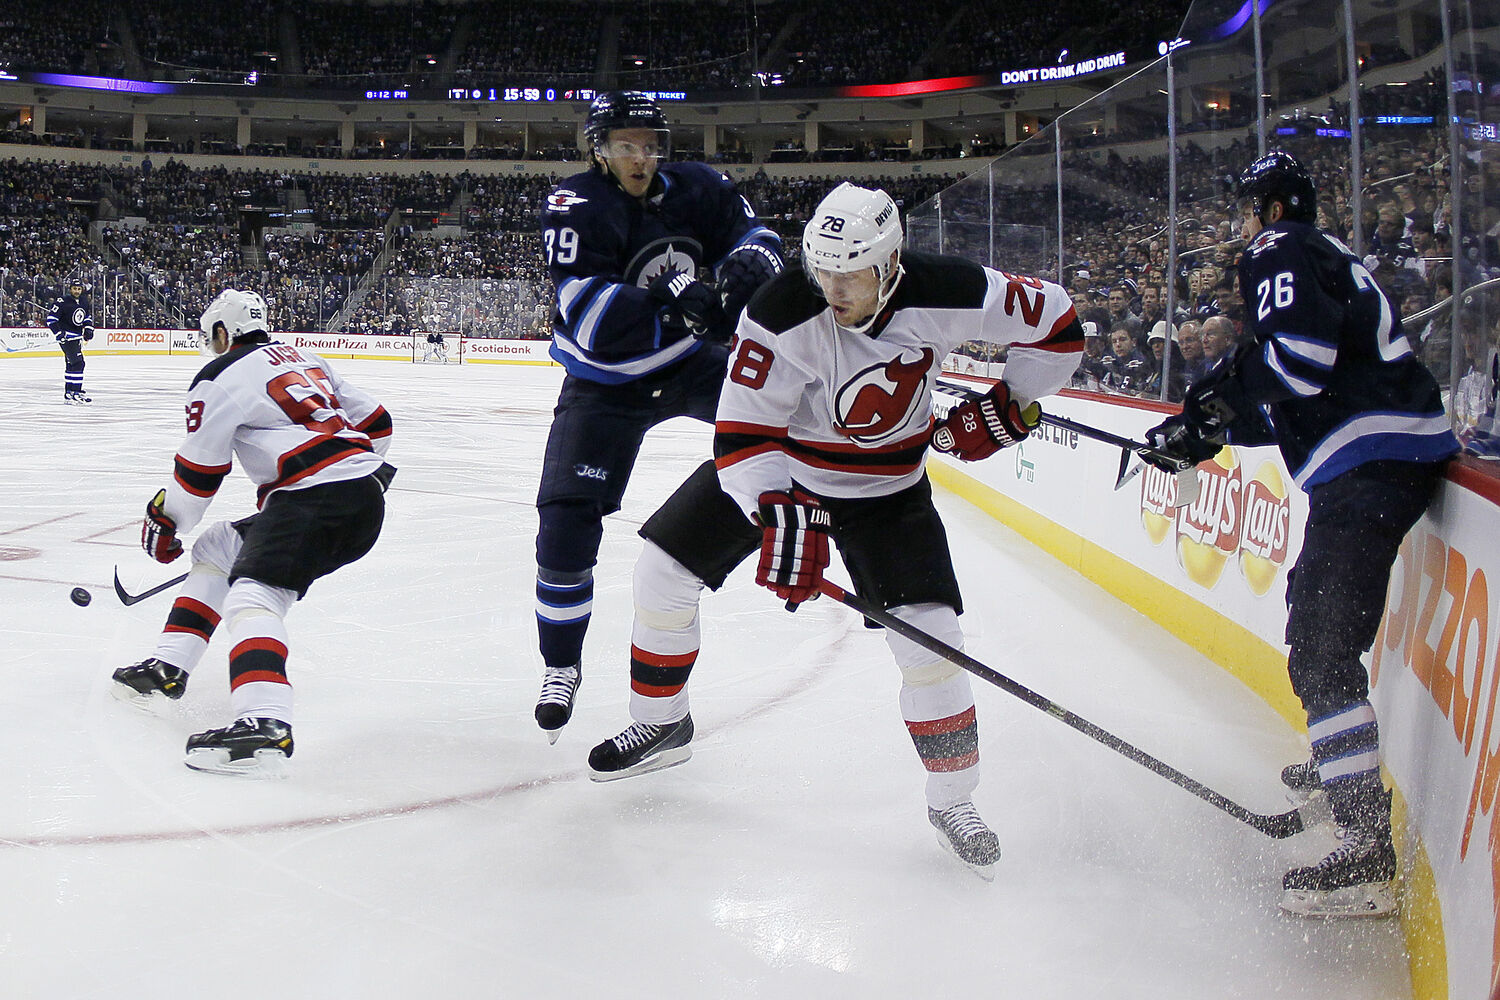 Toby Enstrom attempts to go around Anton Volchenkov during the second period. (JOHN WOODS / WINNIPEG FREE PRESS)